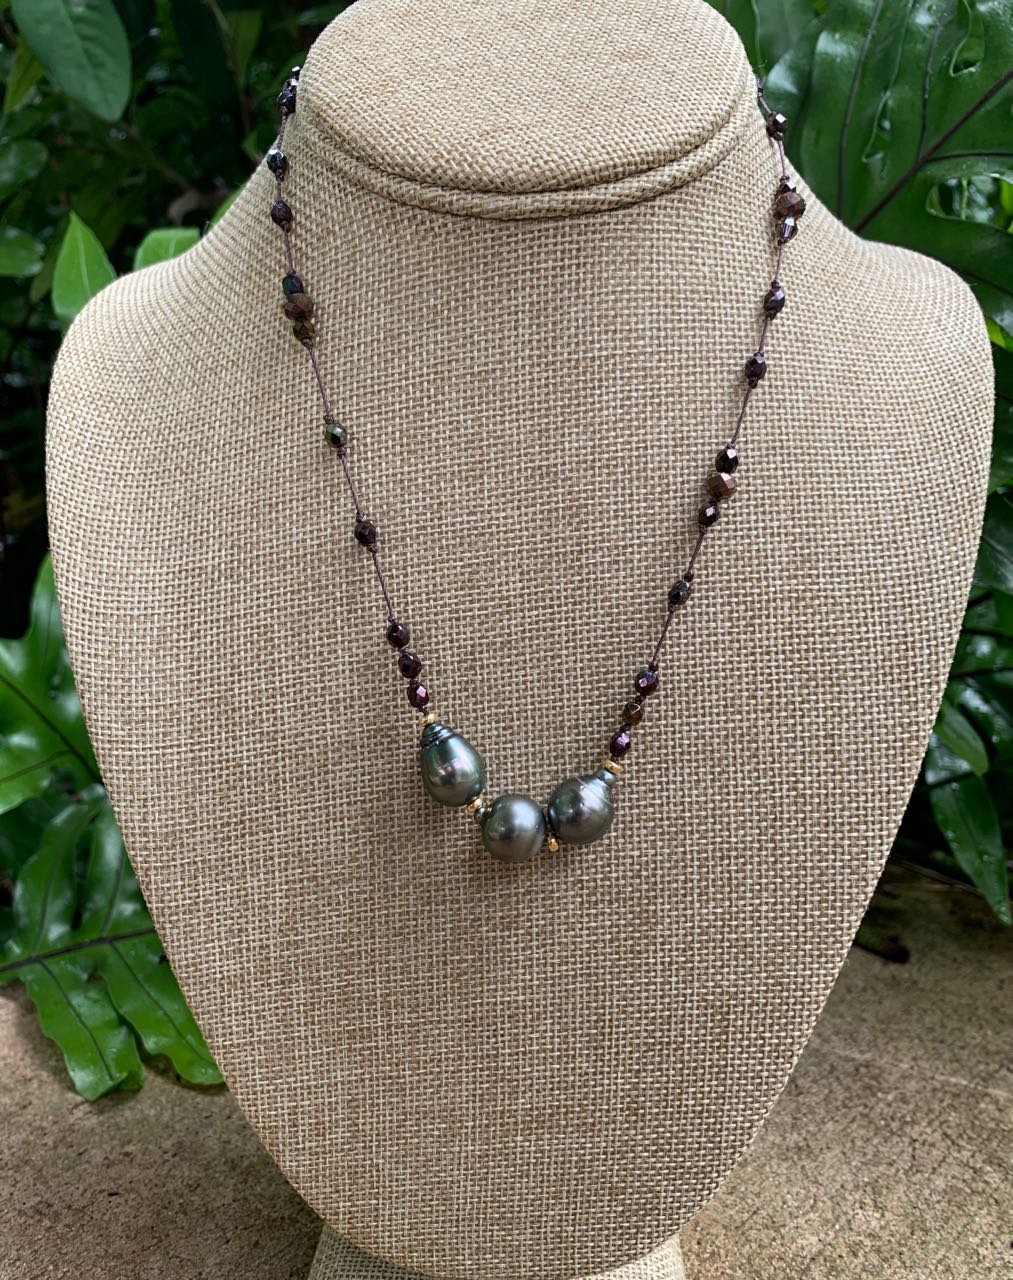 Fafaloha: Mahine Tahitian Pearl & Glass Beads Necklace